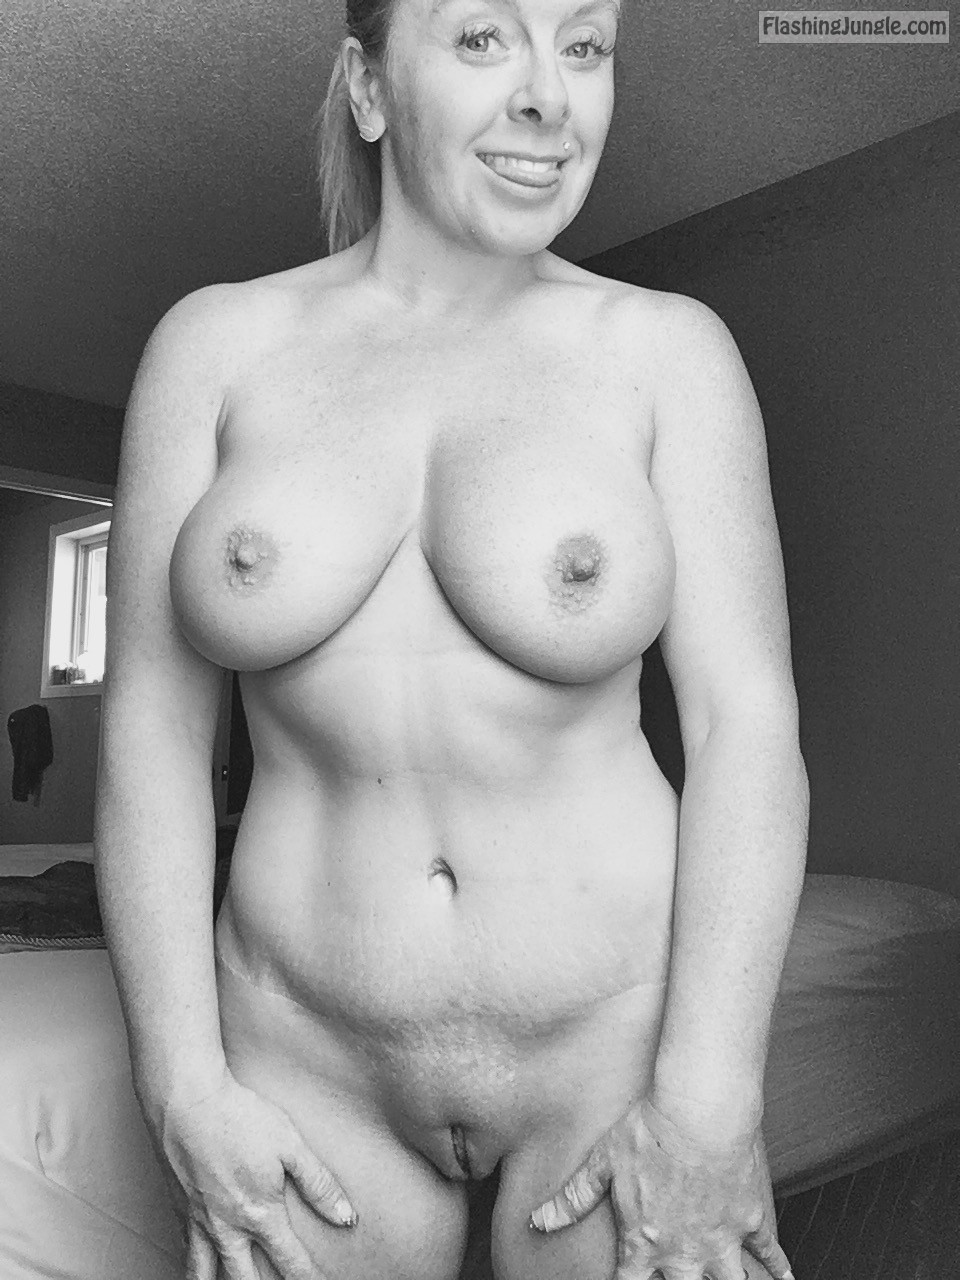 Real couple private nudity, super sexy wife 5 photos @geemanandwomen public nudity milf pics howife